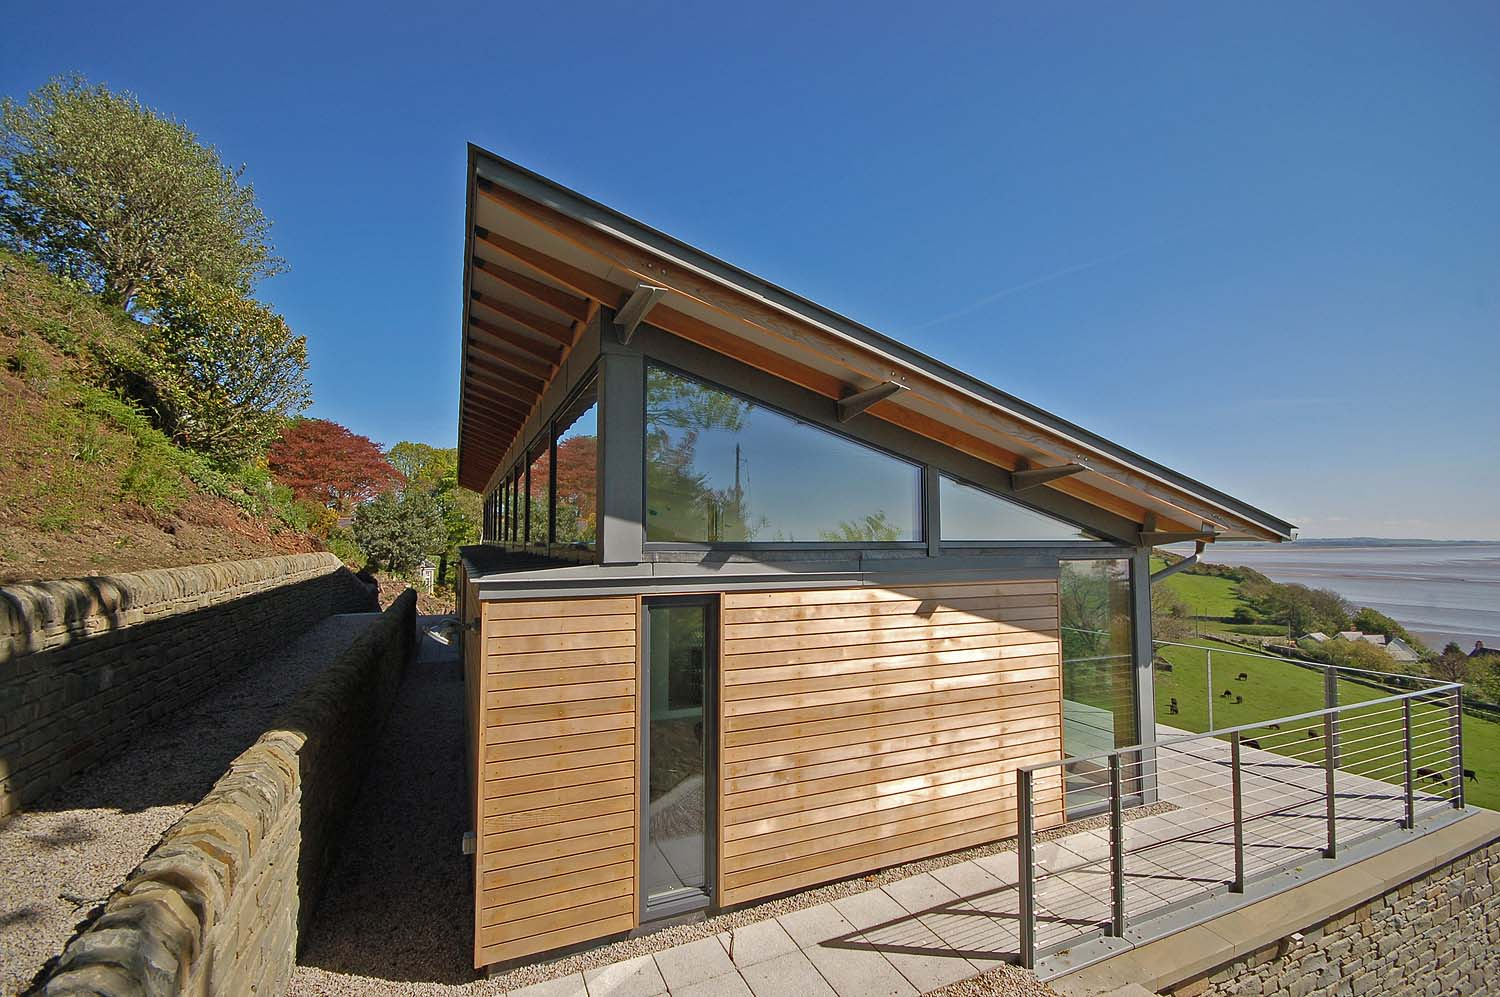 House Designs Scotland Low Energy Houses Simon Winstanley Architects